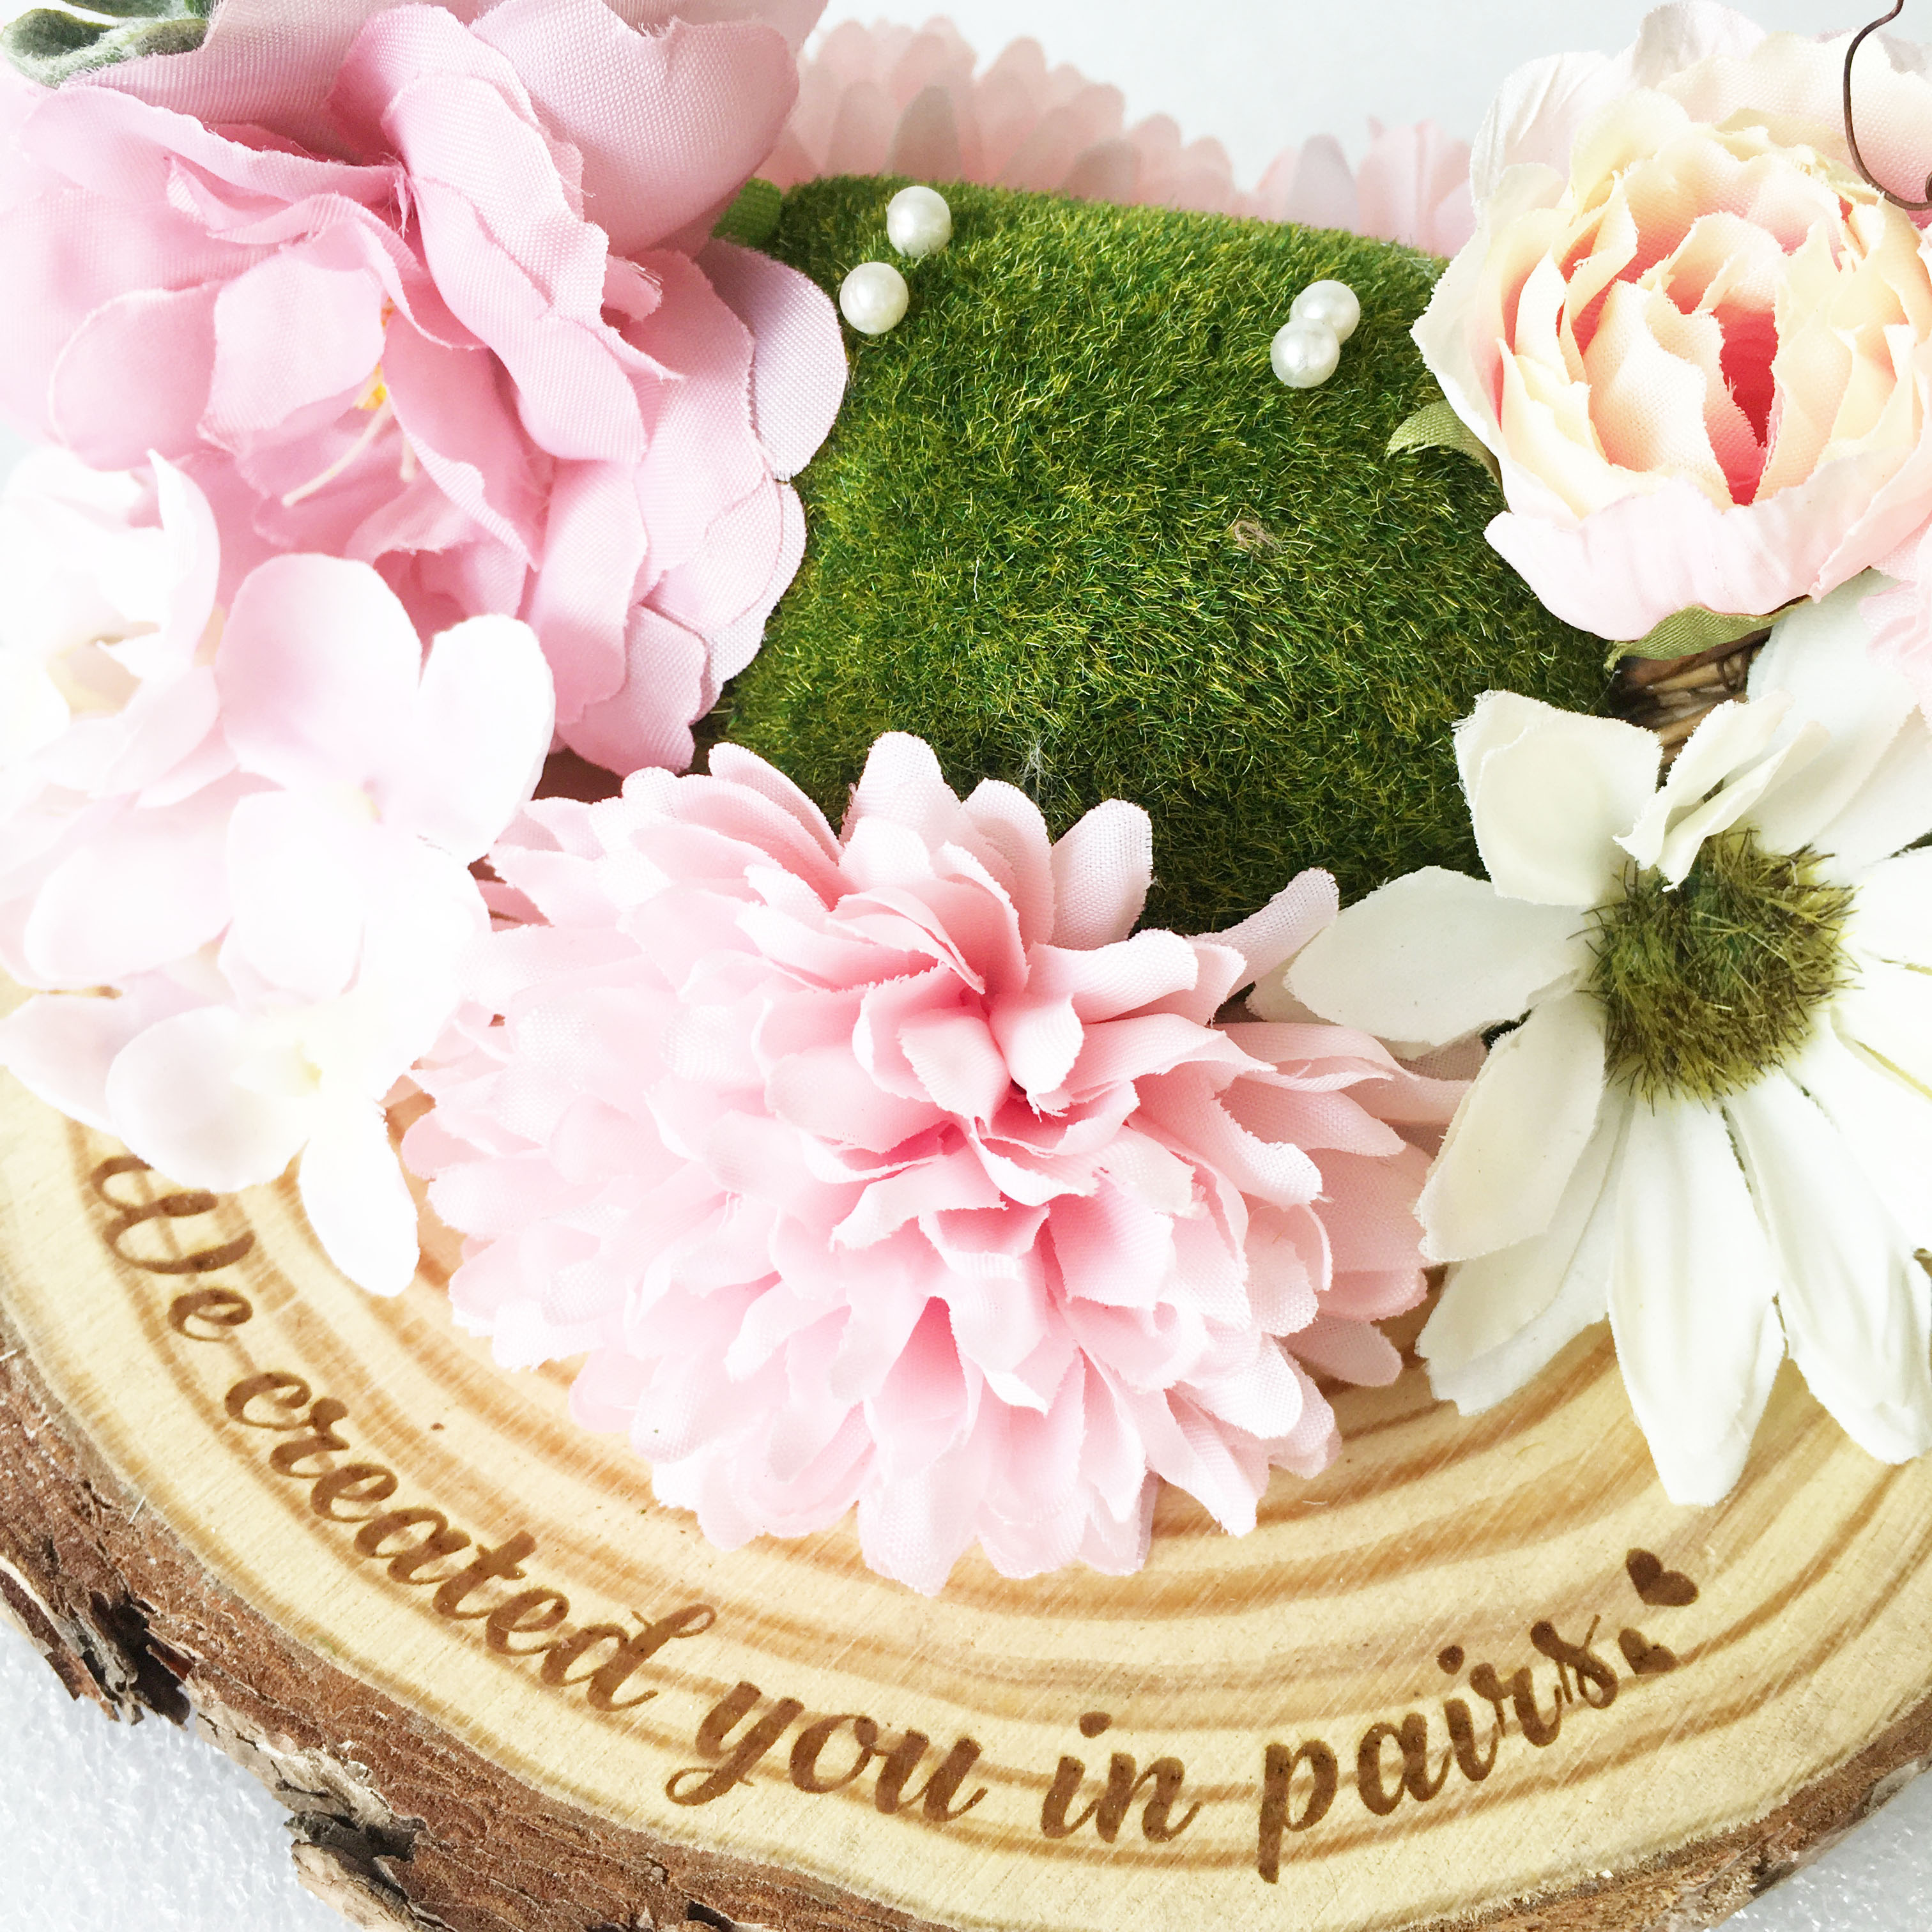 Enagagement 1Pcs Props For Groom Any Party Custom Pink Rustic Marriage Wedding Lot Bride Photo Decorations Ring Wreath Language